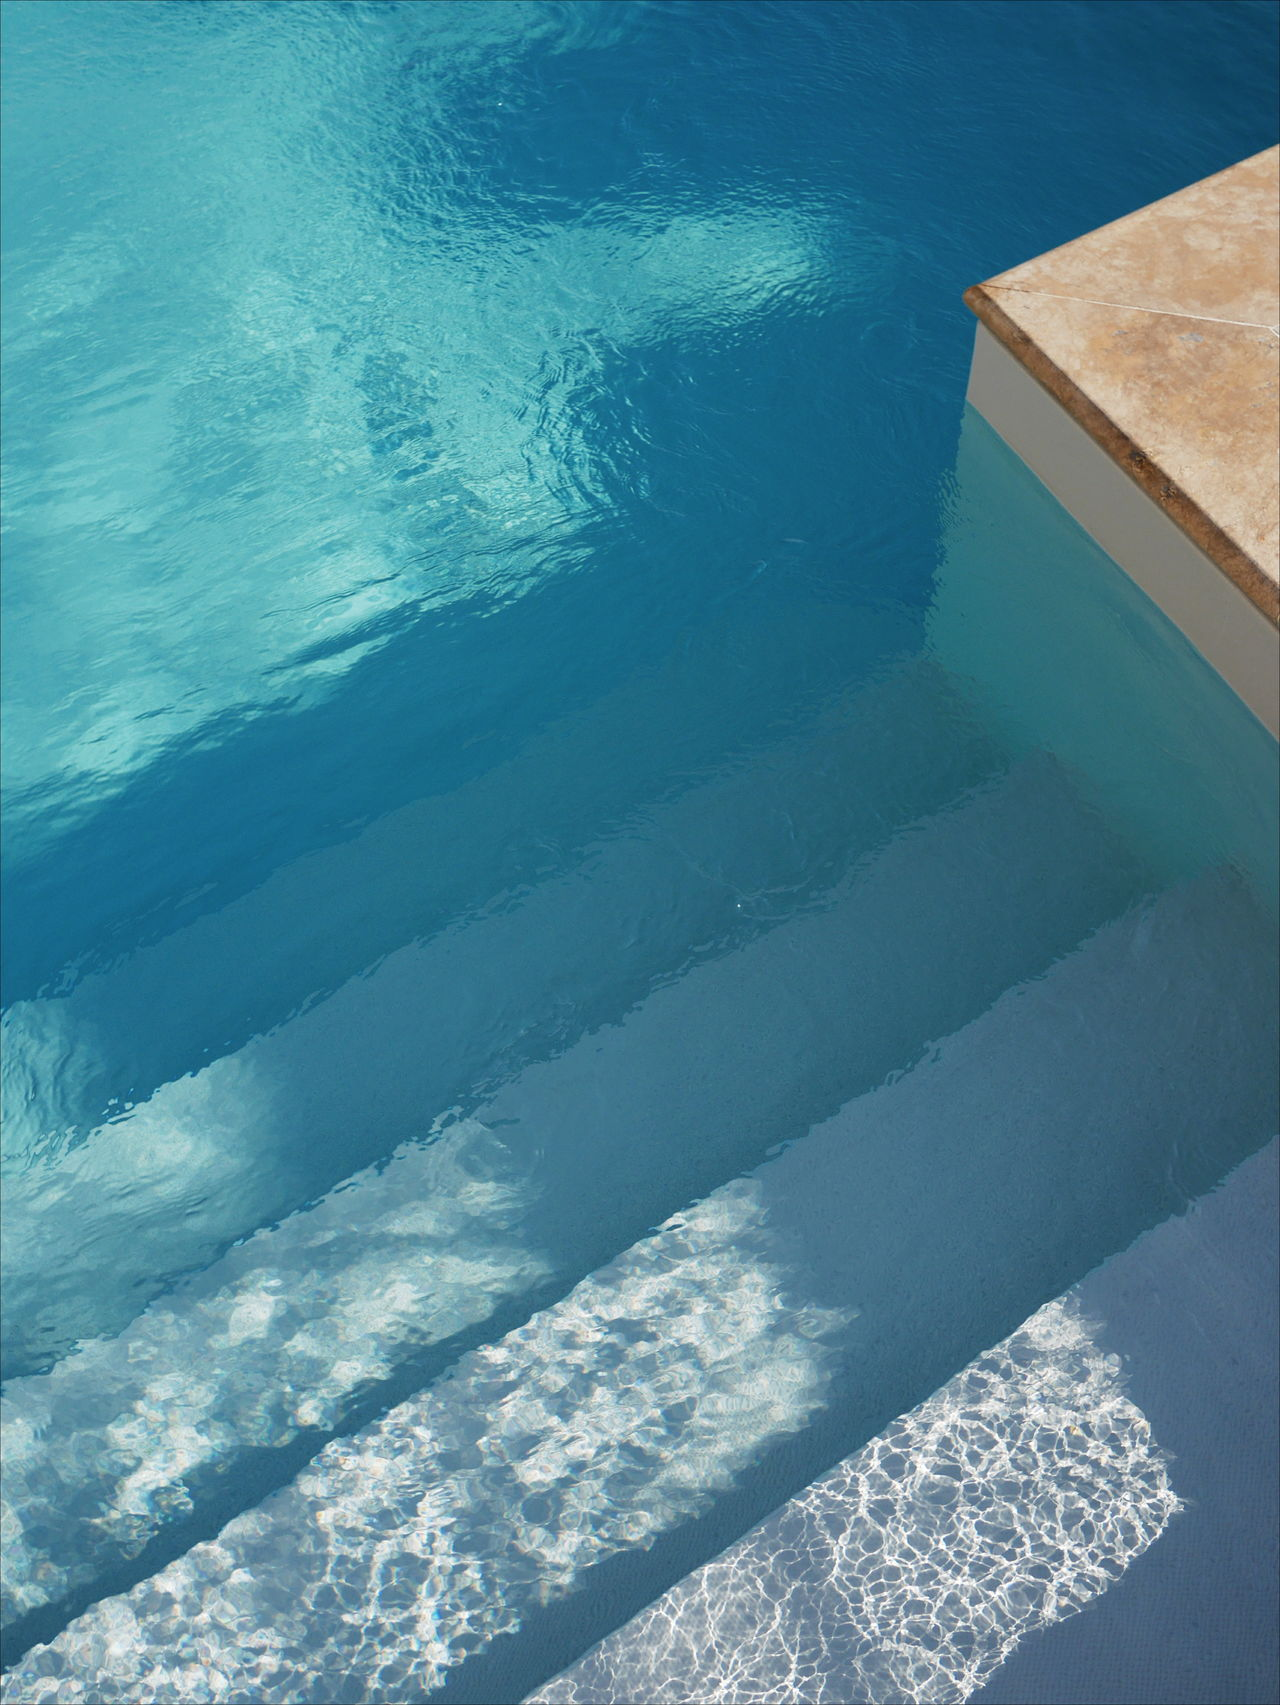 HIGH ANGLE VIEW OF SWIMMING POOL AT SEA